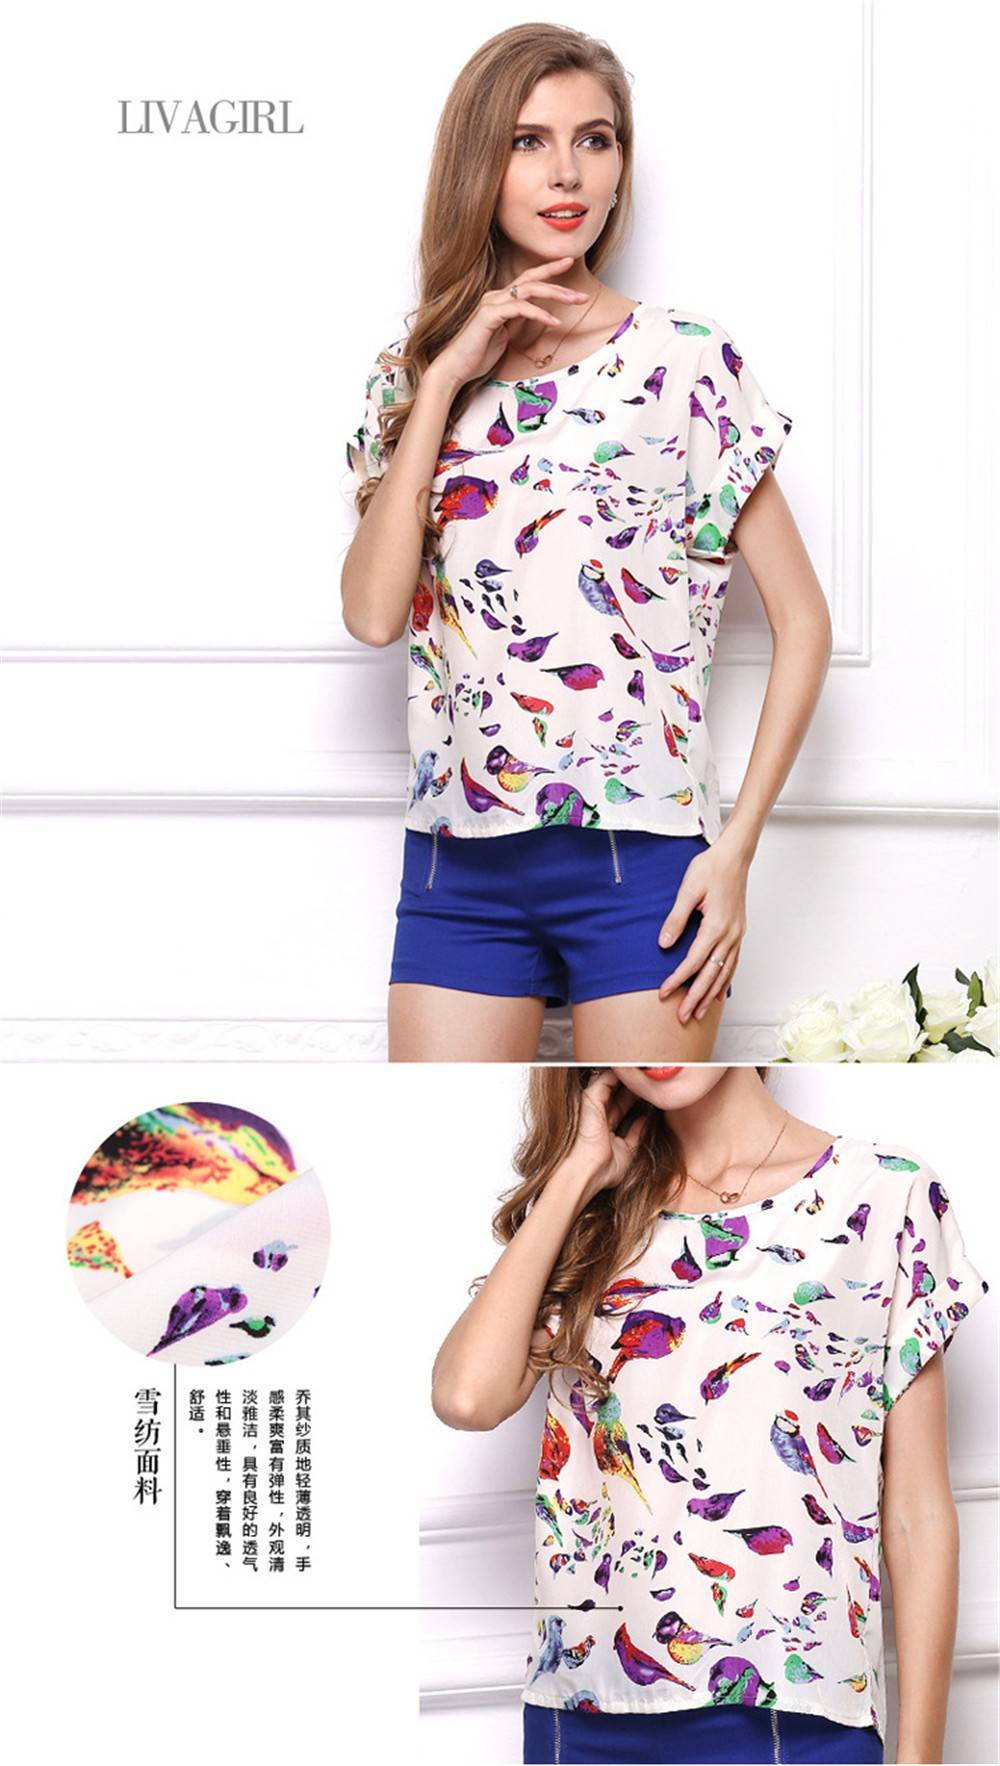 2015 O-neck Woman's Breathable Tops Loose Women T-shirt Pullover Plus Size XXL Casual Women T-shirt Cheap Chinese Clothes Top (4)